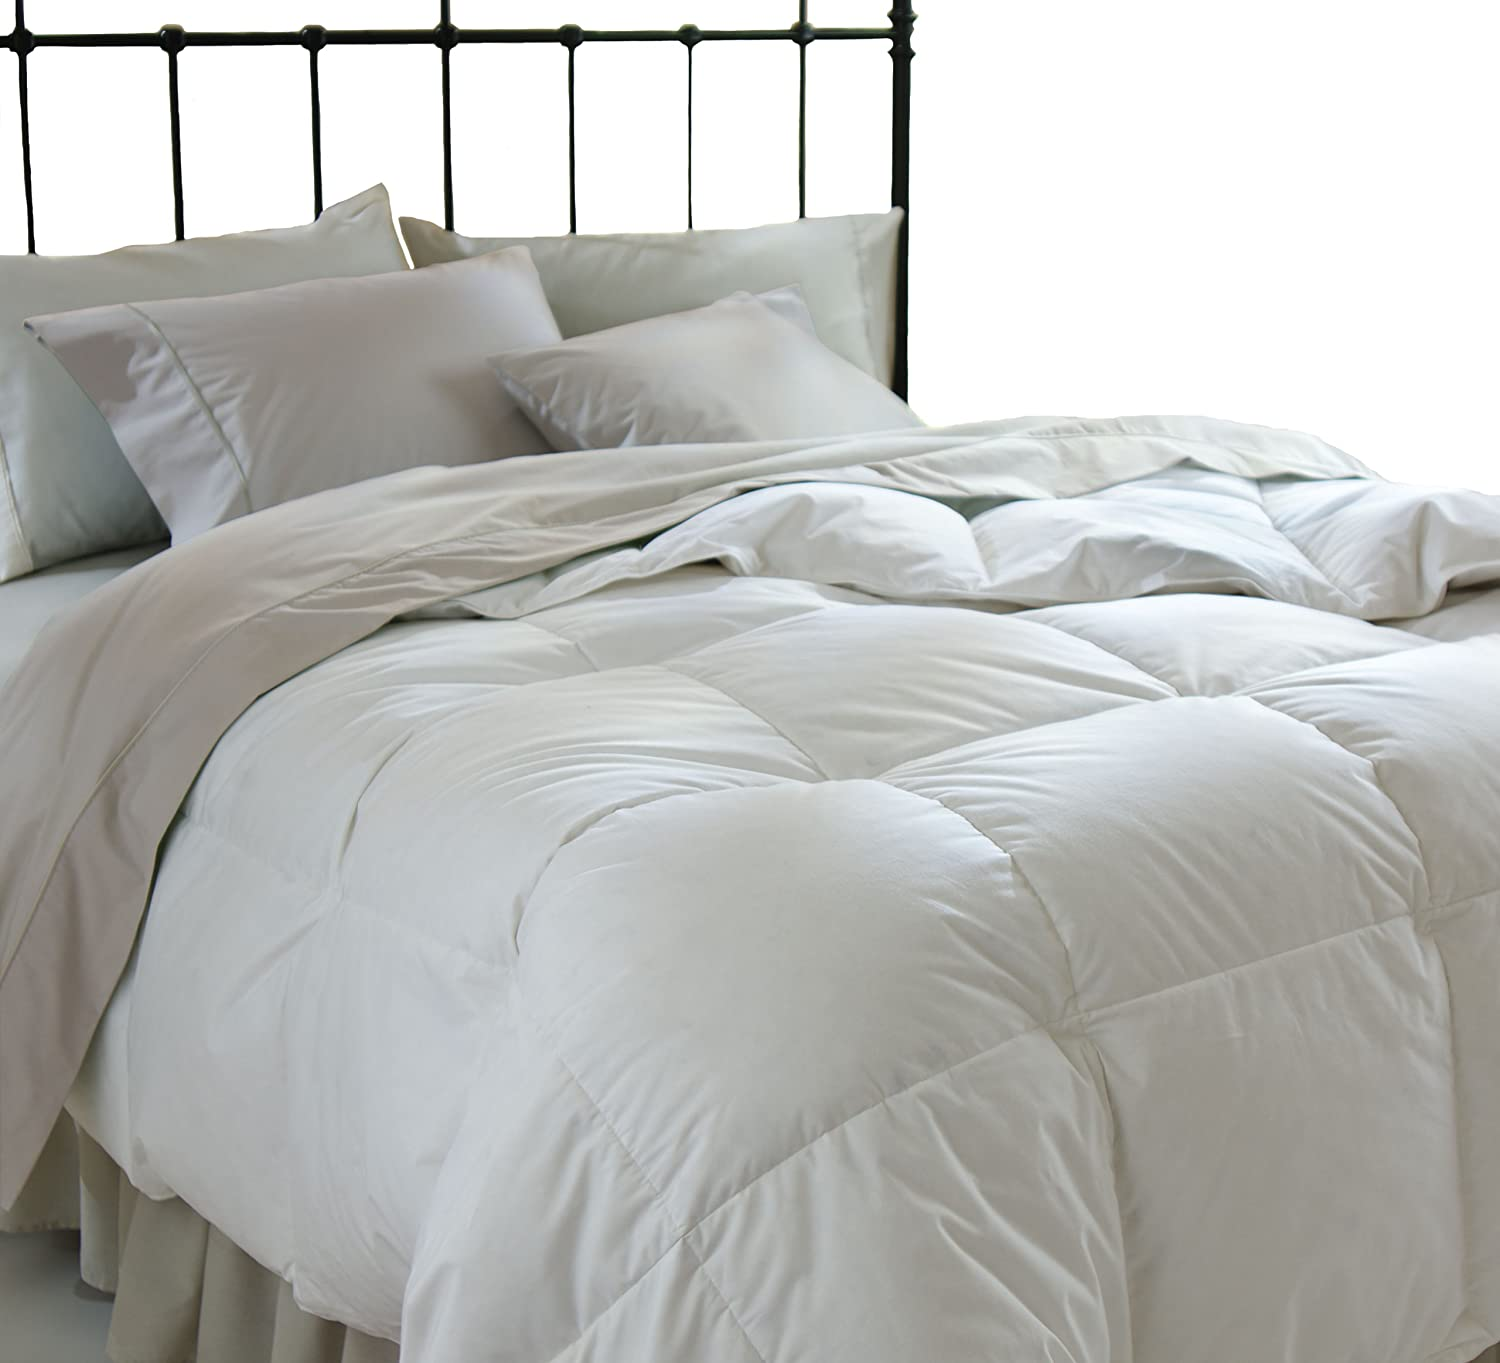 Flannel Bedding Sets Ease Bedding With Style